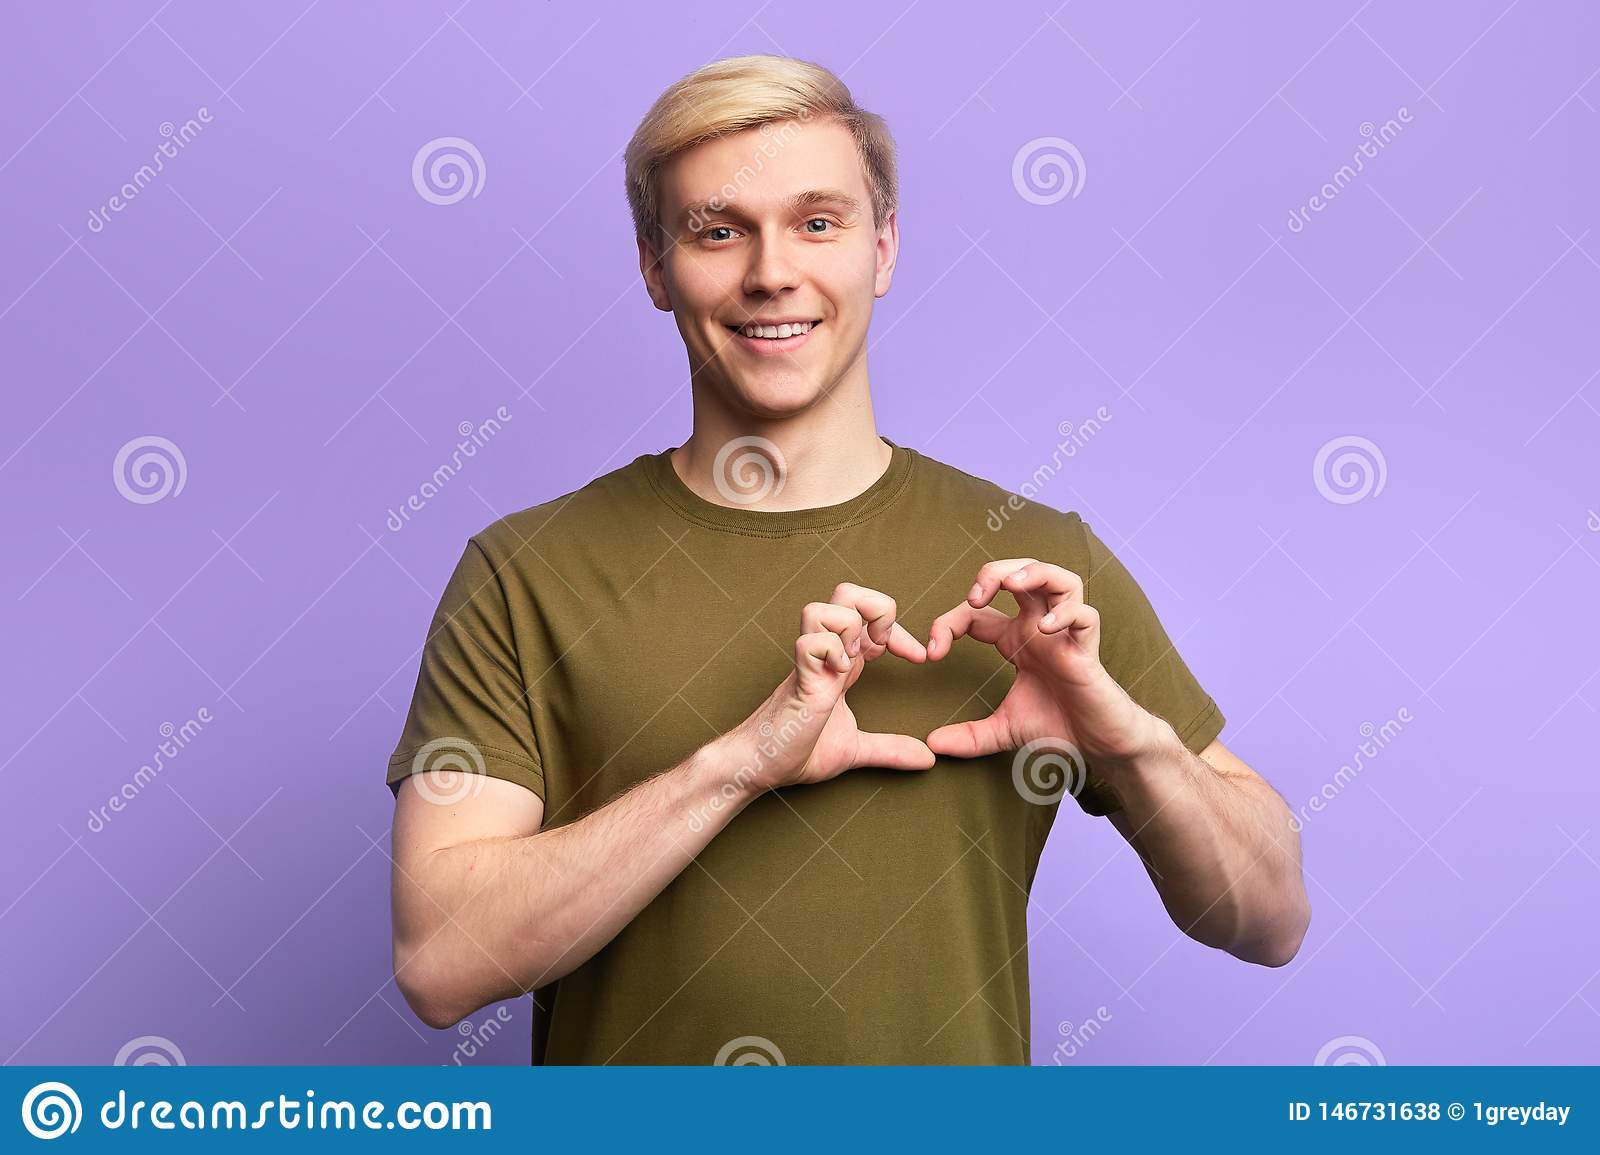 Happy attractive young man, holding hands in heart gesture ,